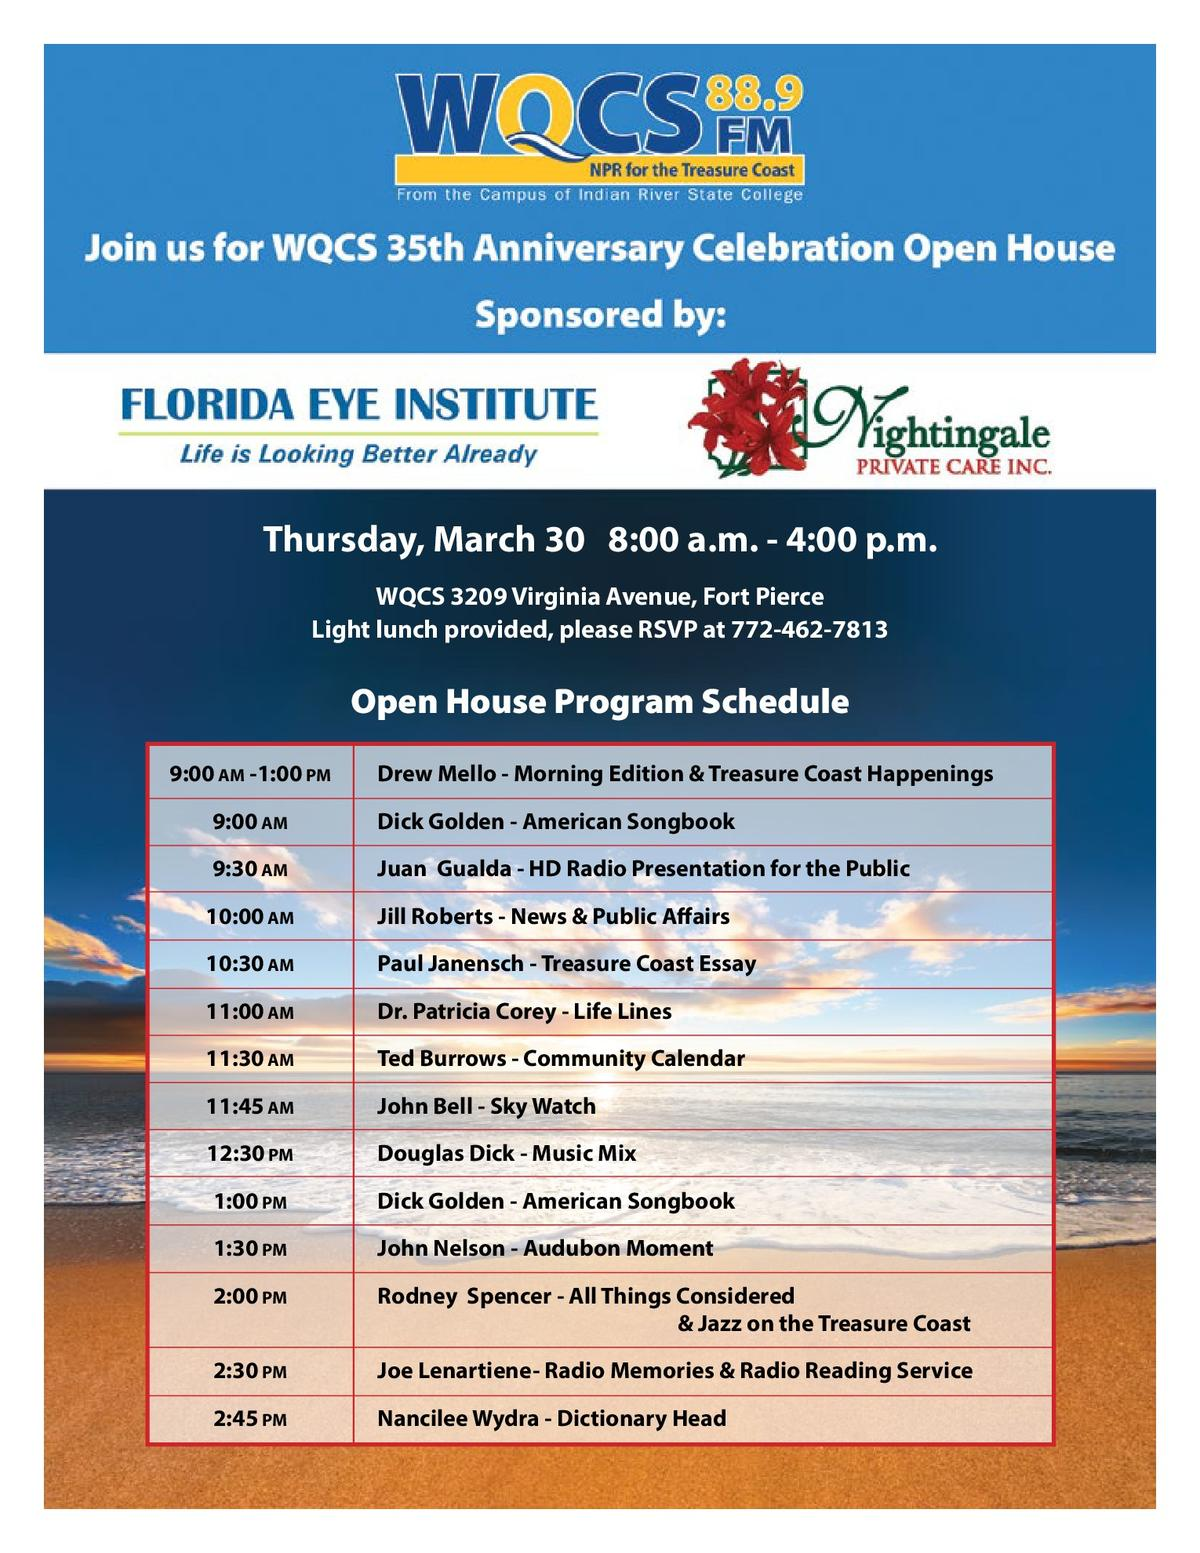 npr for the treasure coast join us for the 35th anniversary celebration open house